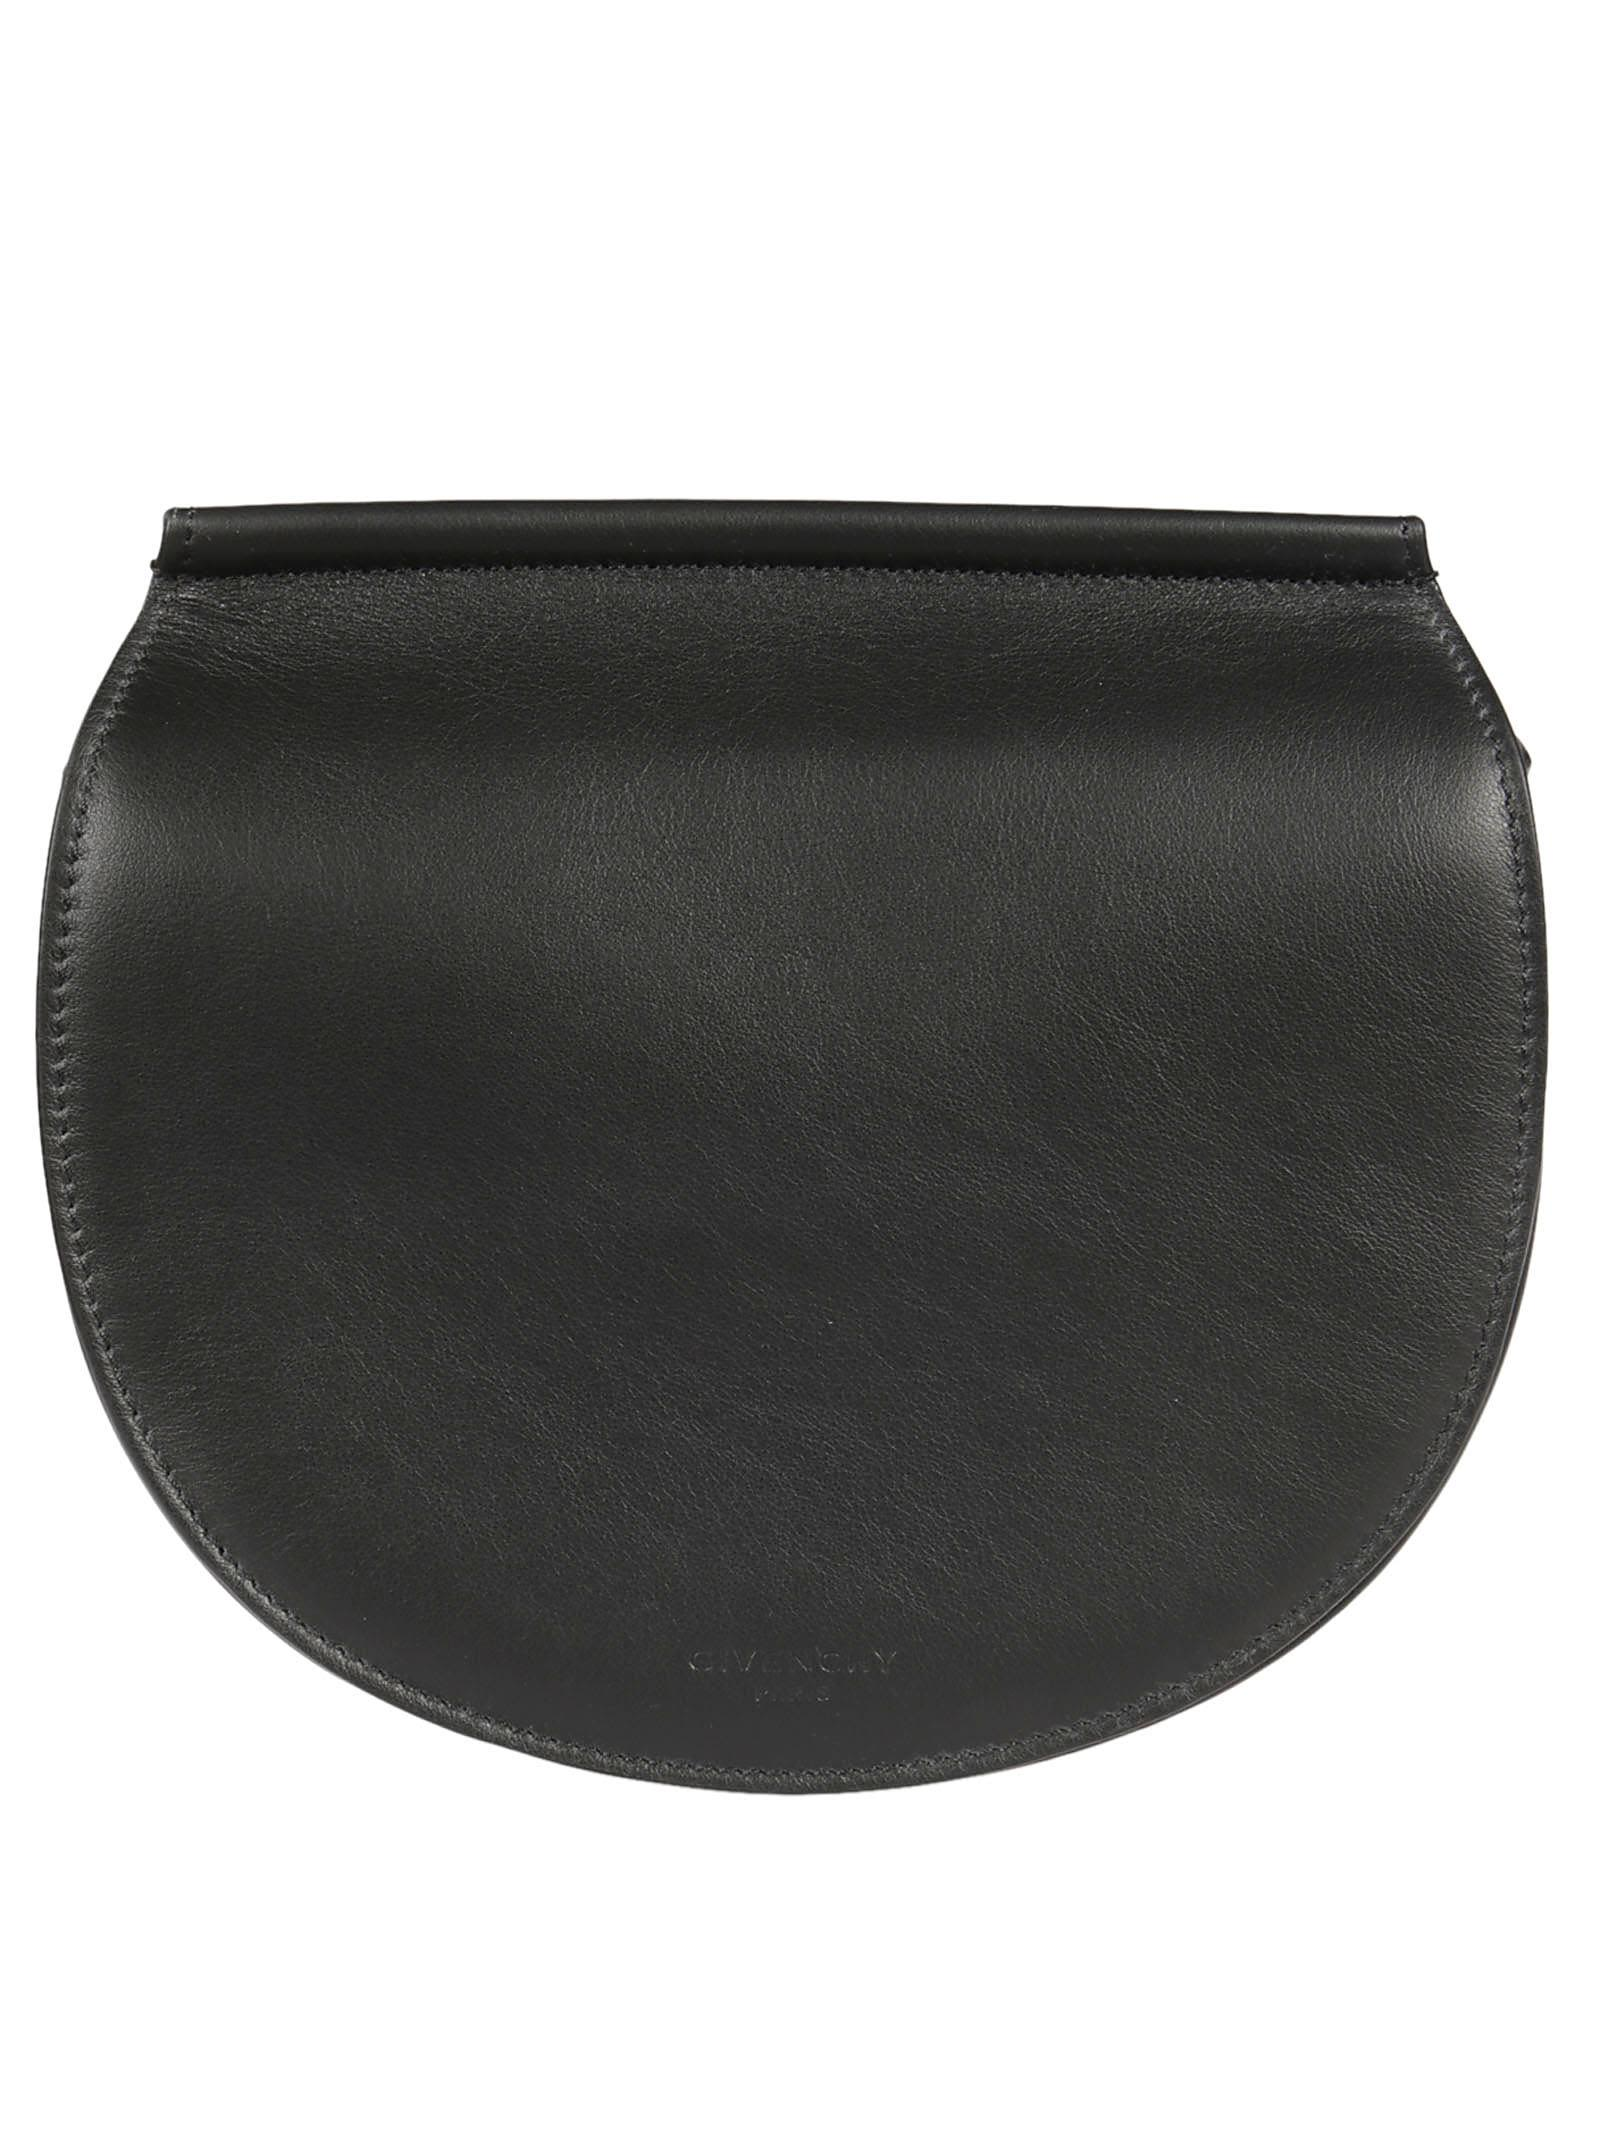 Givenchy Infinity Mini Saddle Bag